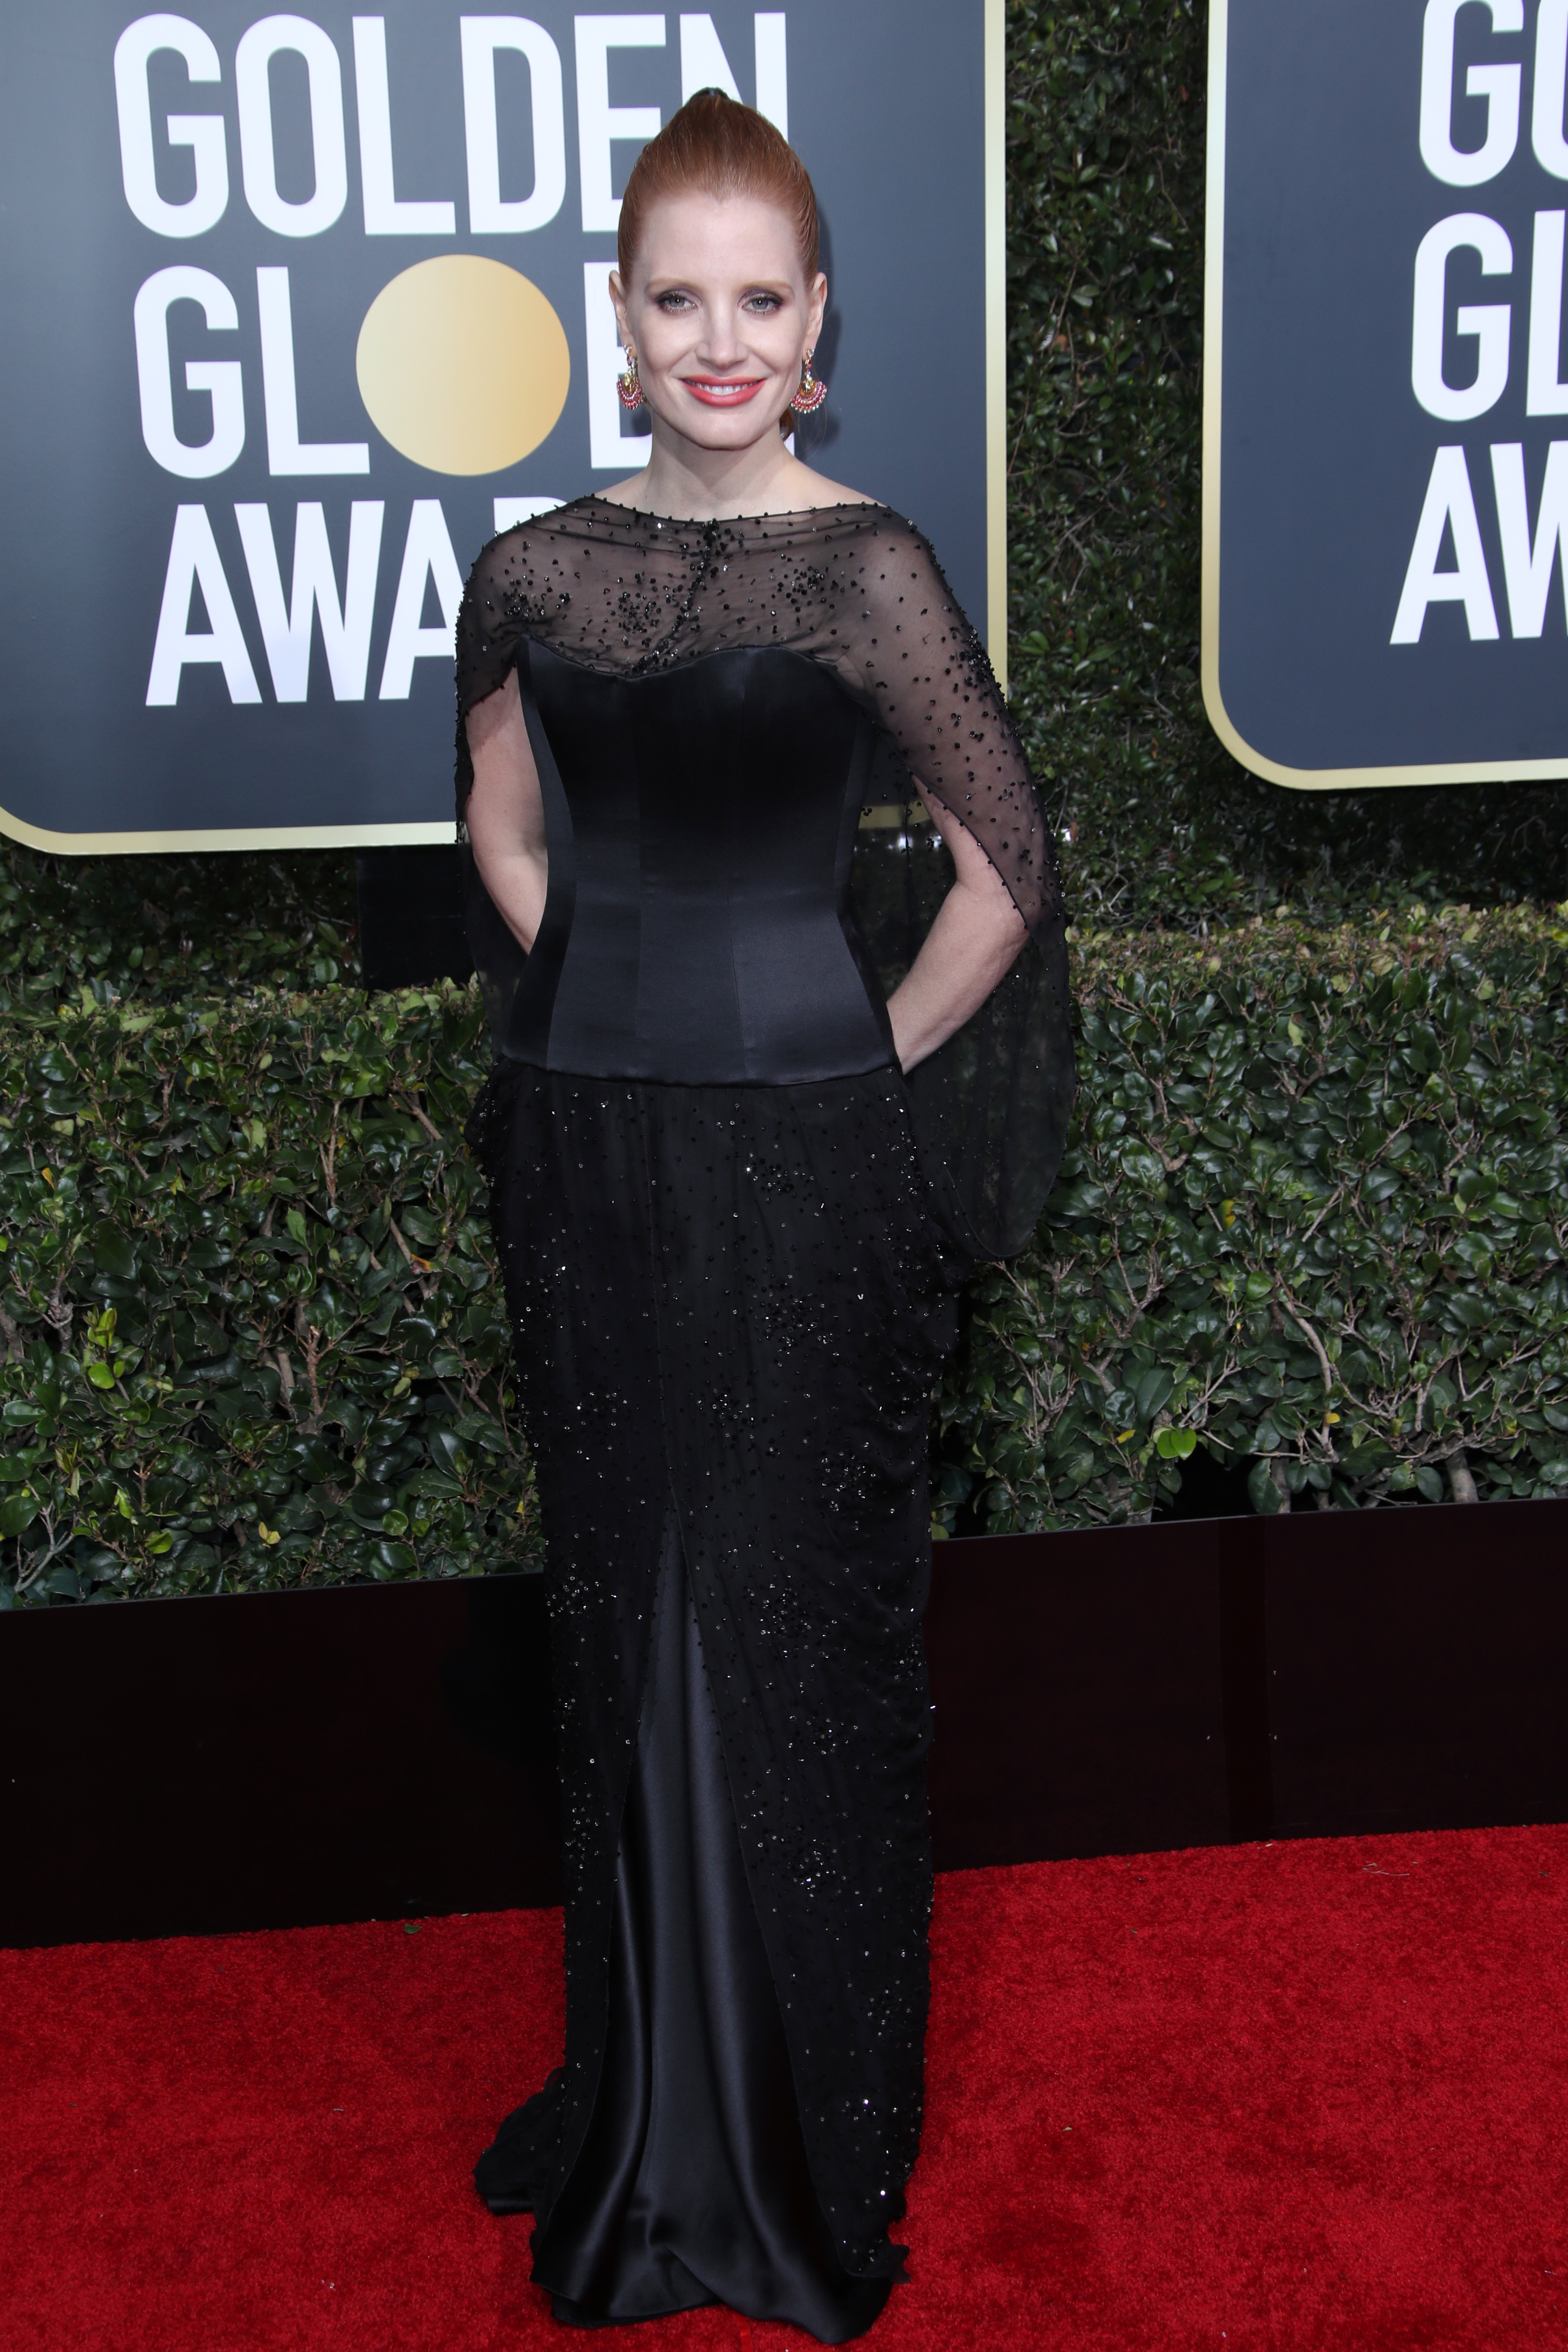 Jessica Chastain attends the 76th Annual Golden Globe Awards in Los Angeles on Jan. 6, 2019.